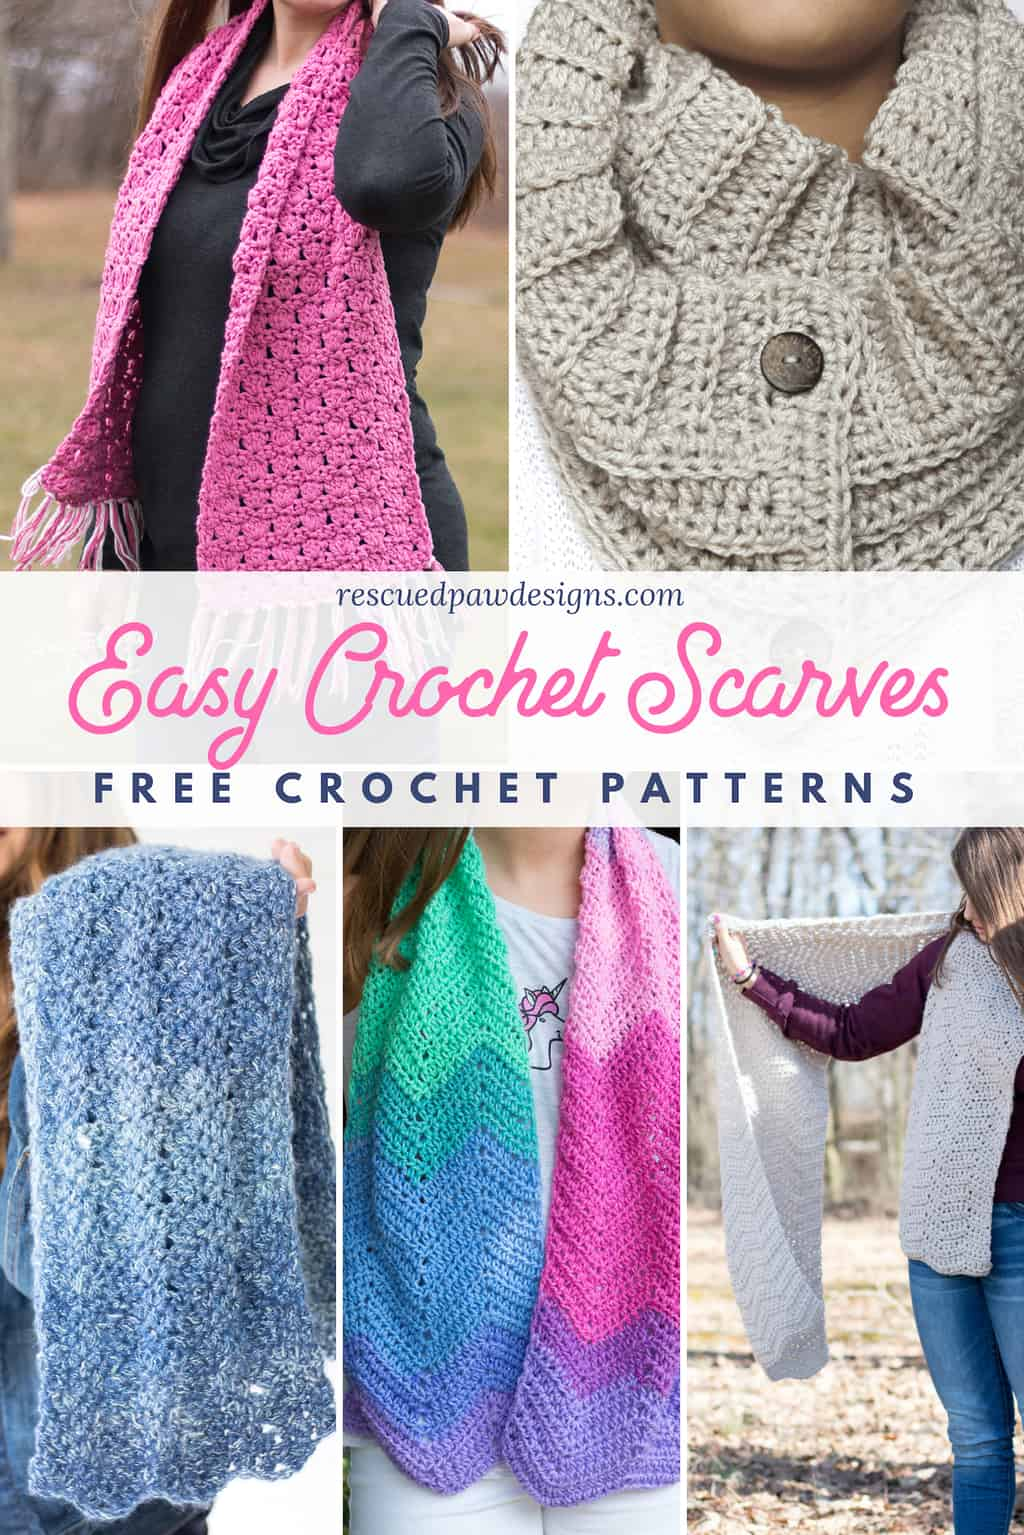 36383a015 5 Free Quick and Easy Crochet Scarf Patterns - Rescued Paw Designs ...